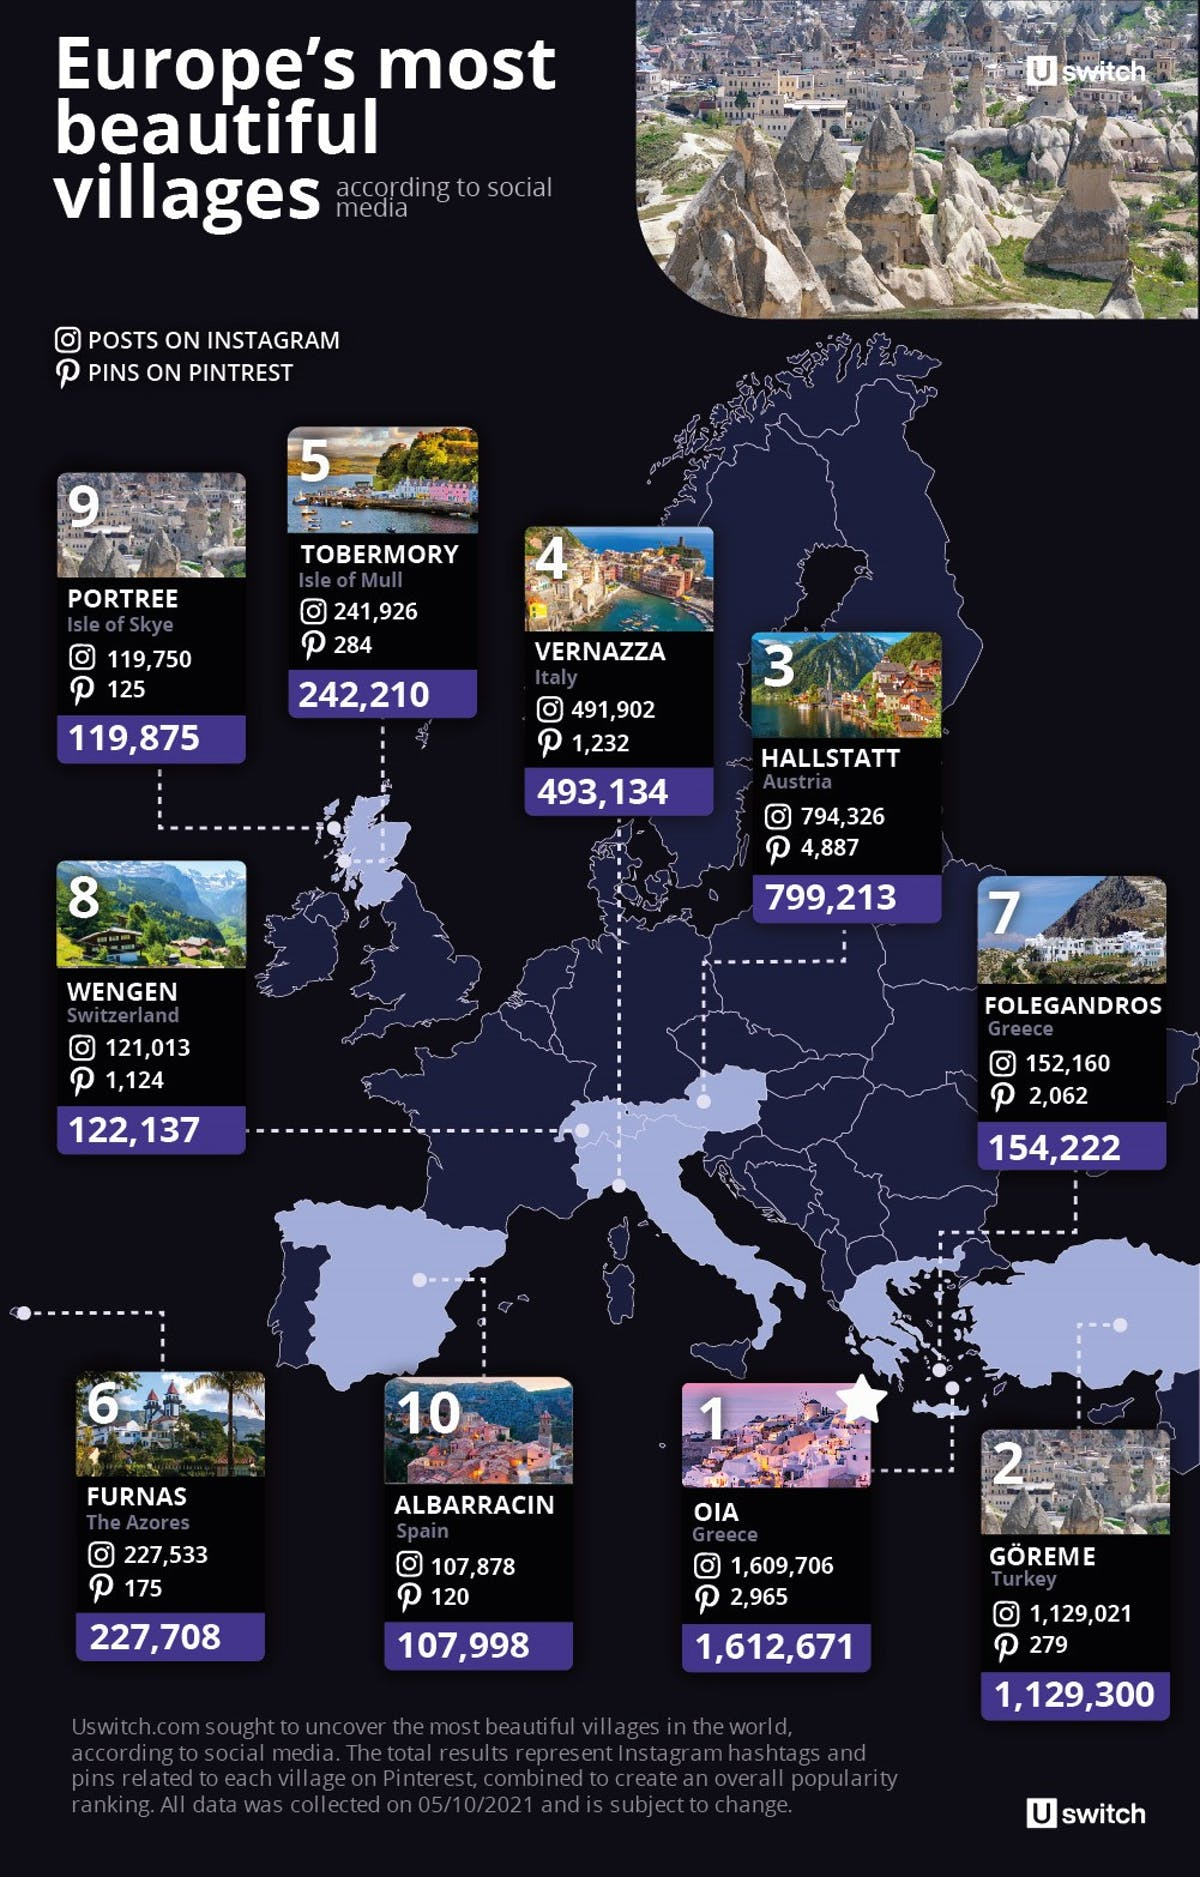 Europe's most beautiful villages map